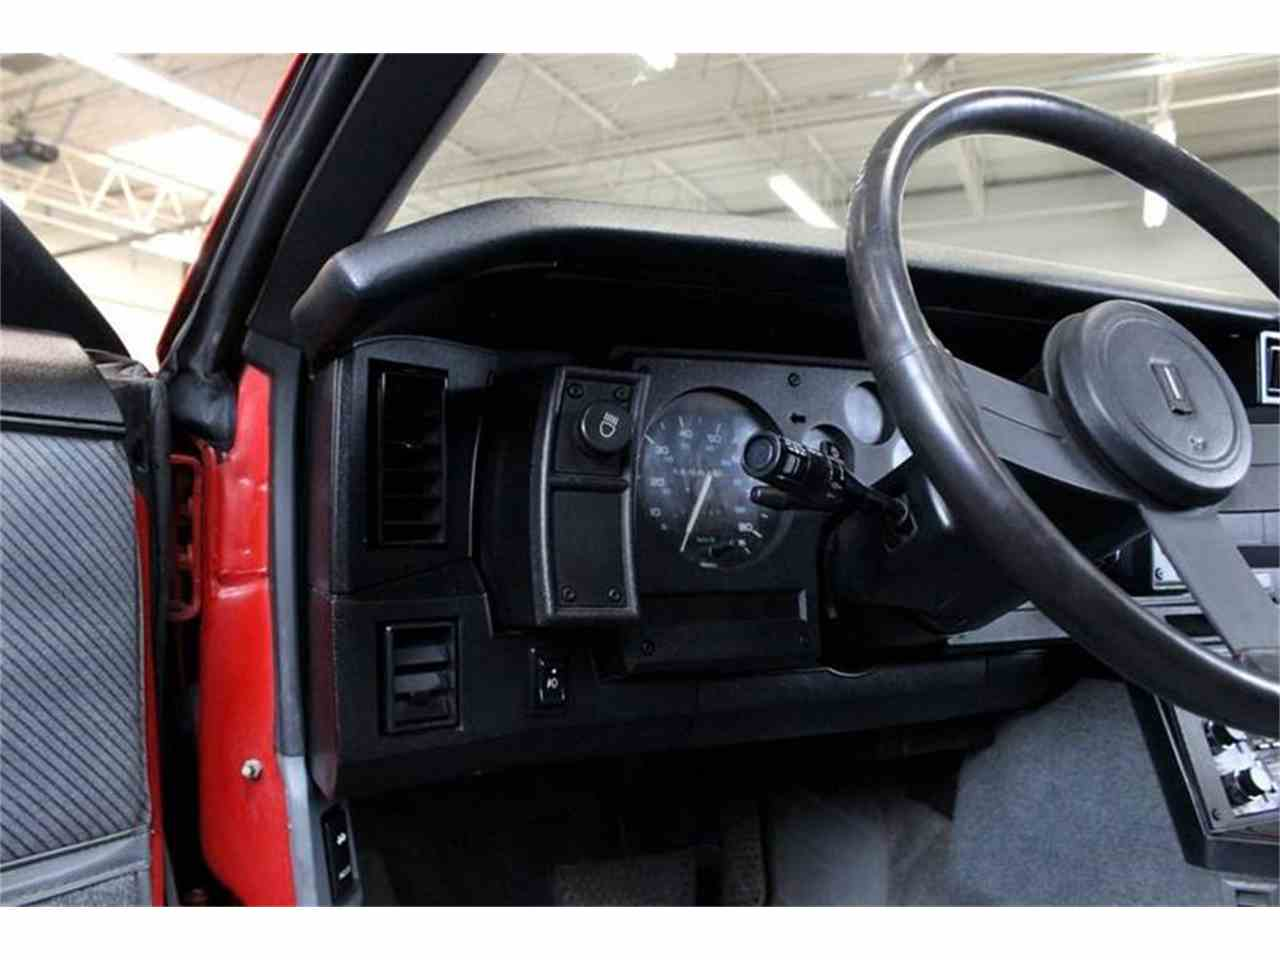 Large Picture of 1985 Chevrolet Camaro located in Illinois - $13,900.00 Offered by Evolve Motors - MH2P